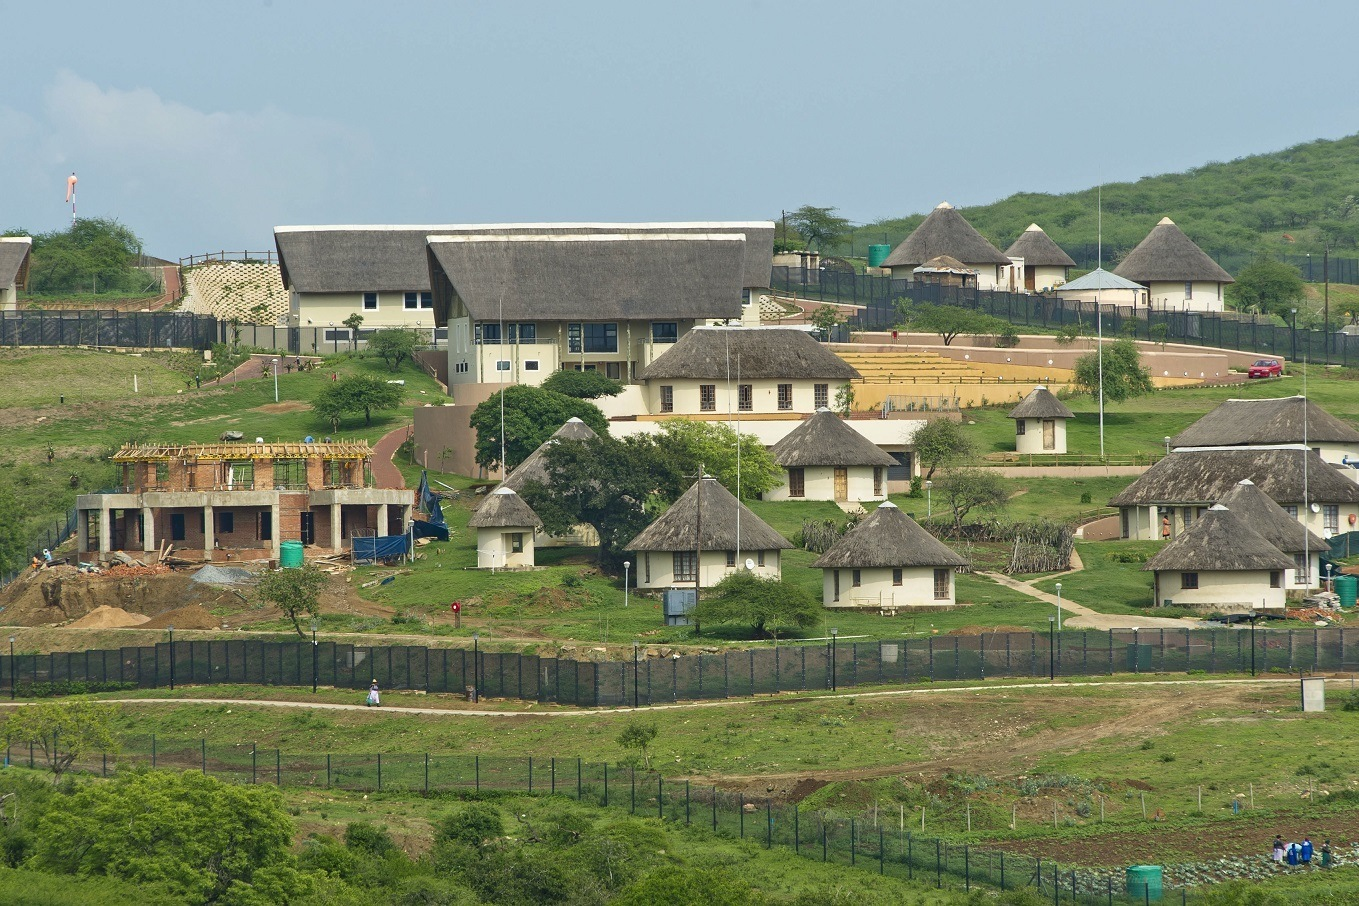 Gangnam Style' Remade Into 'Nkandla Style' – Texx and the City